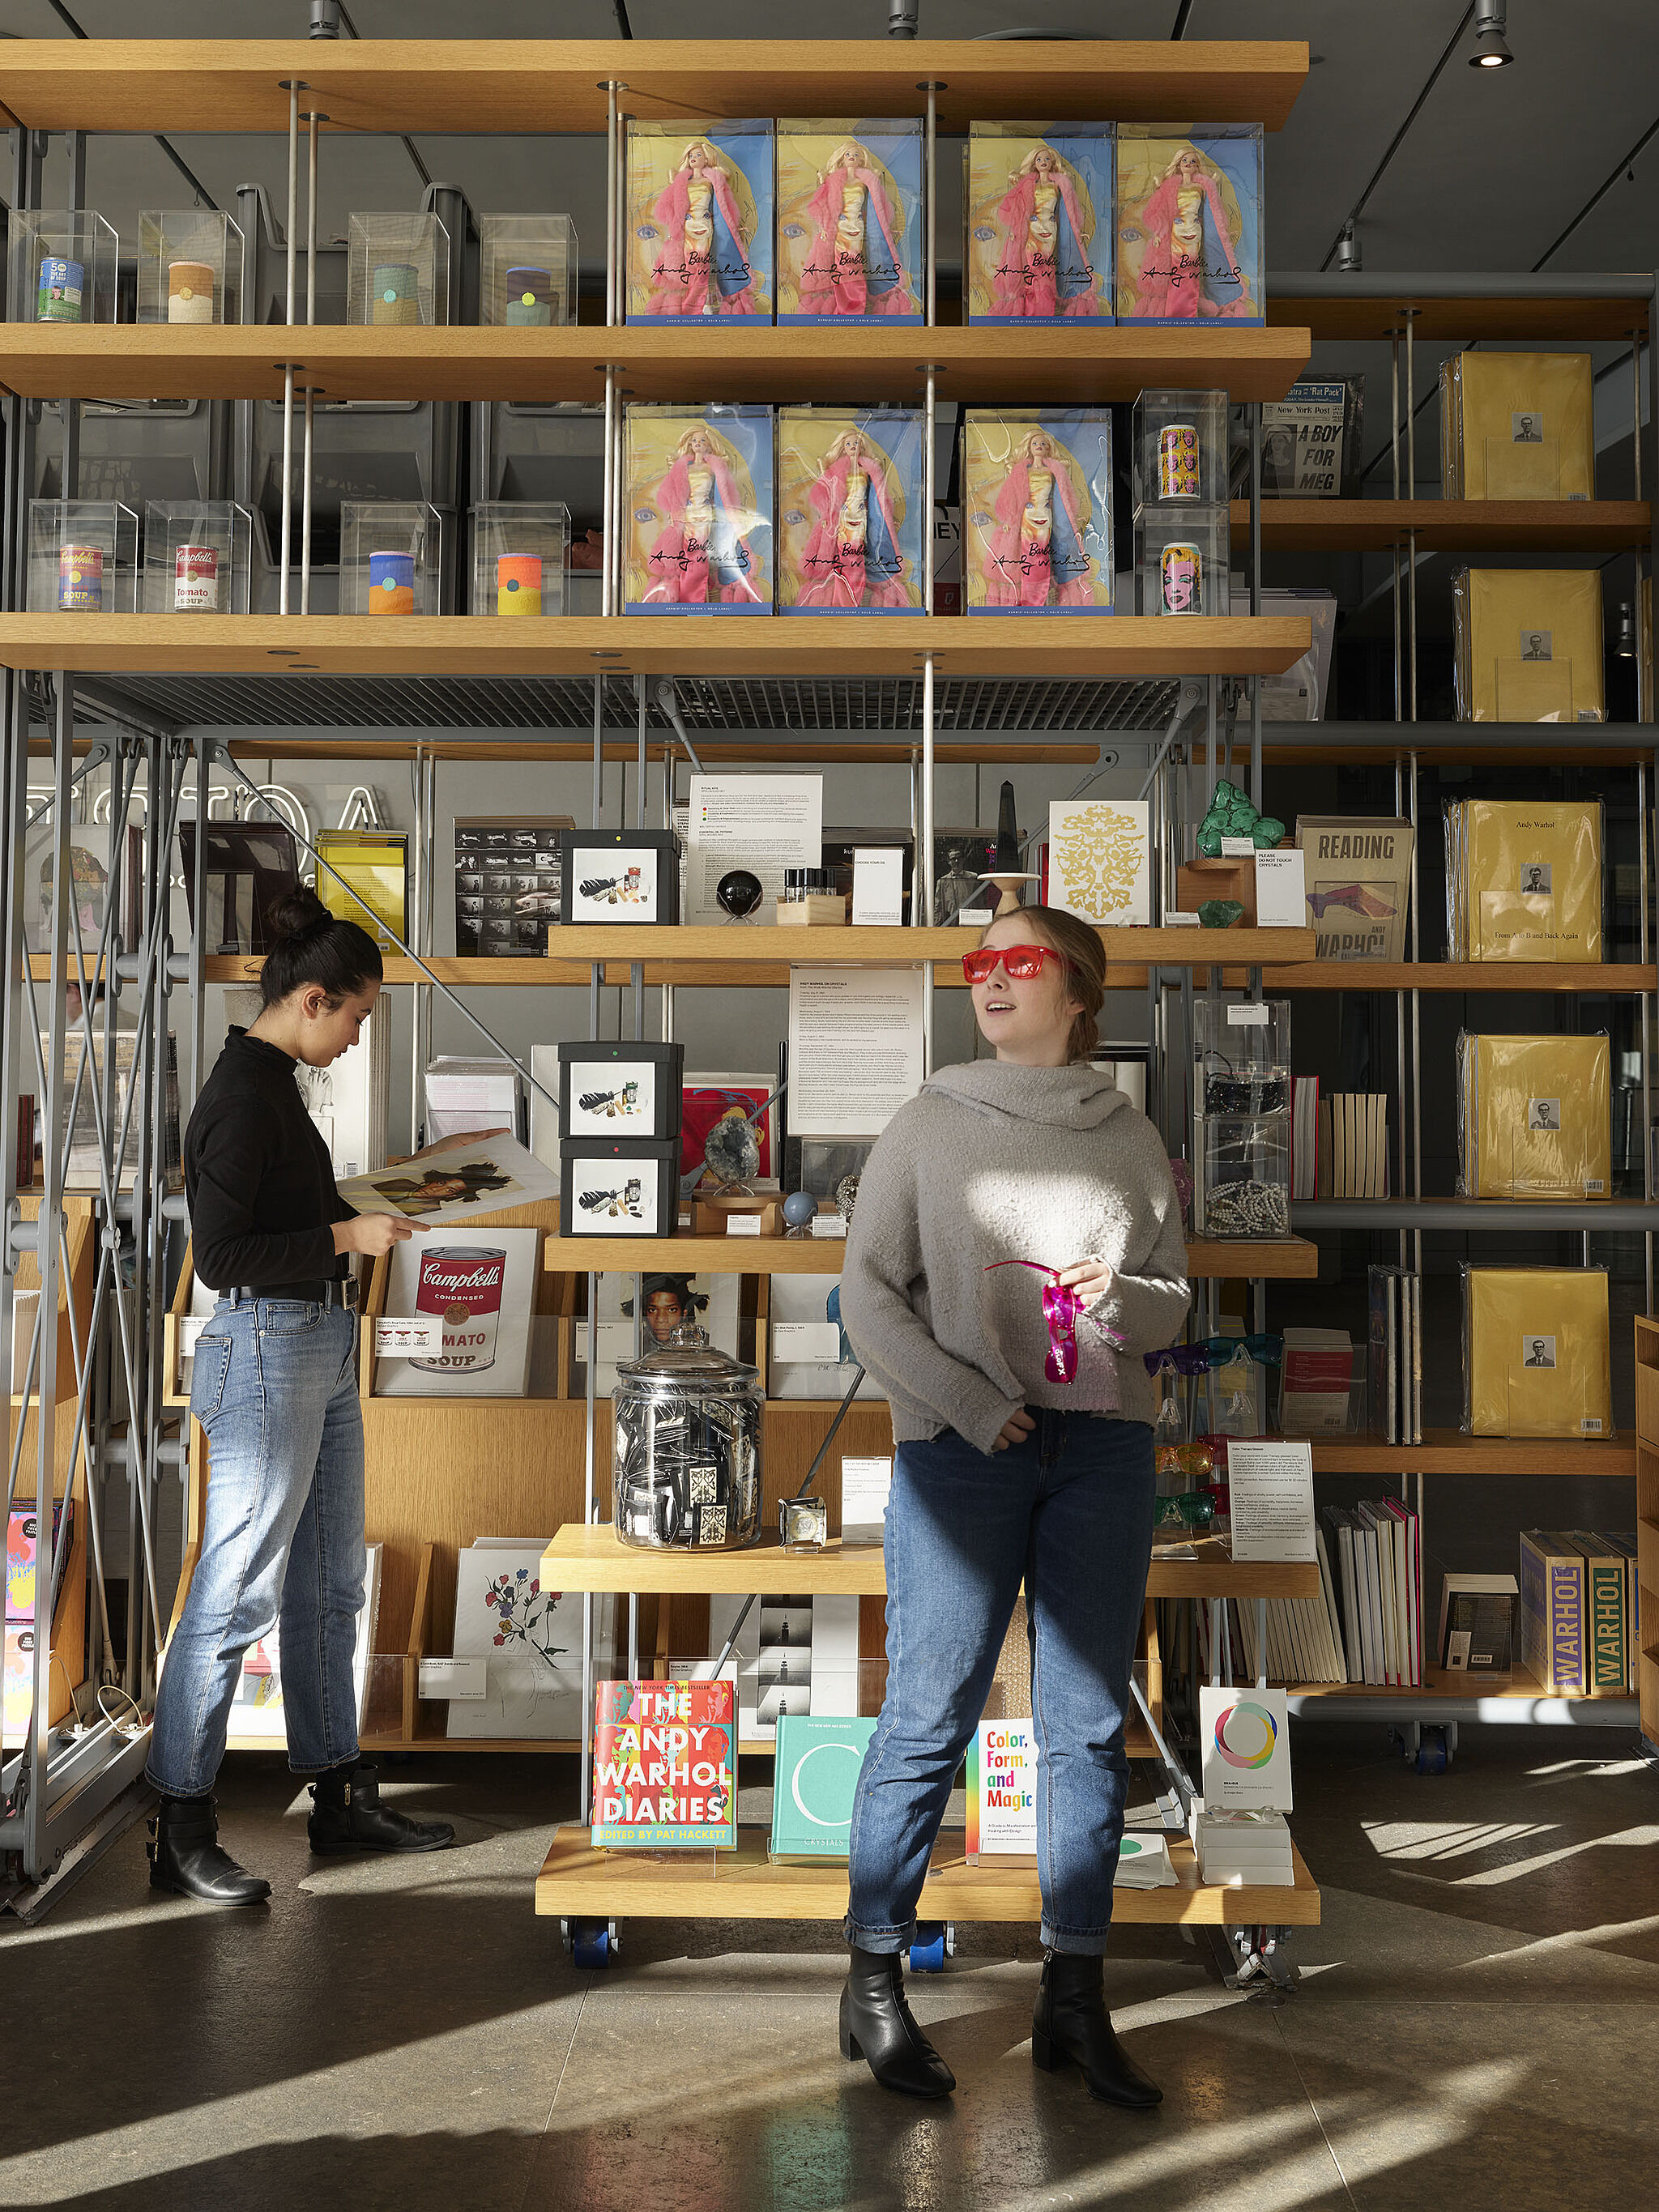 Two people look at items in the Museum Shop.